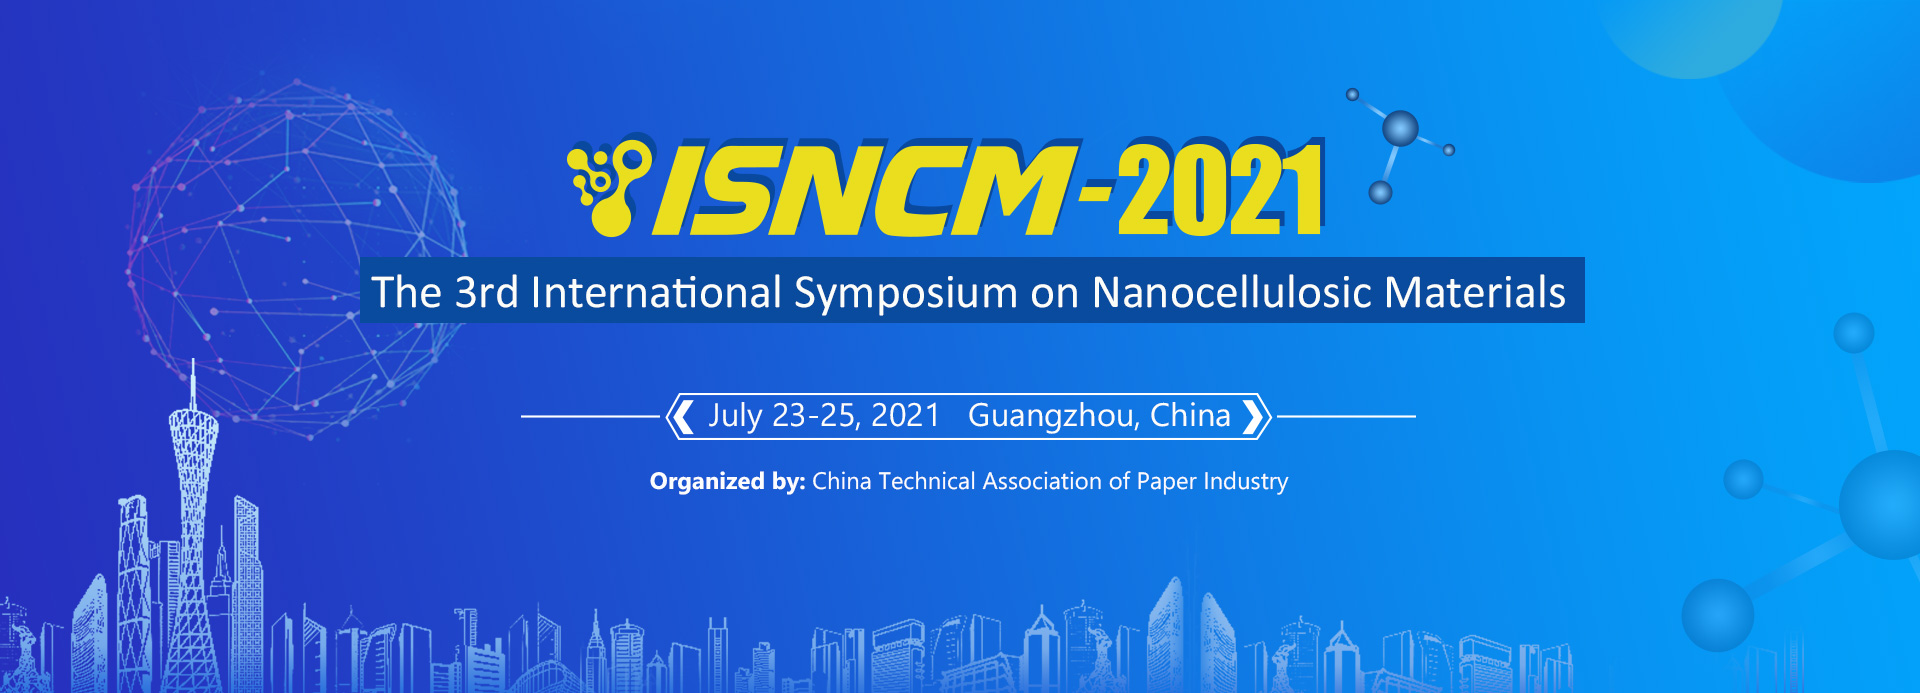 The 3rd International Symposium on Nanocellulosic Materials